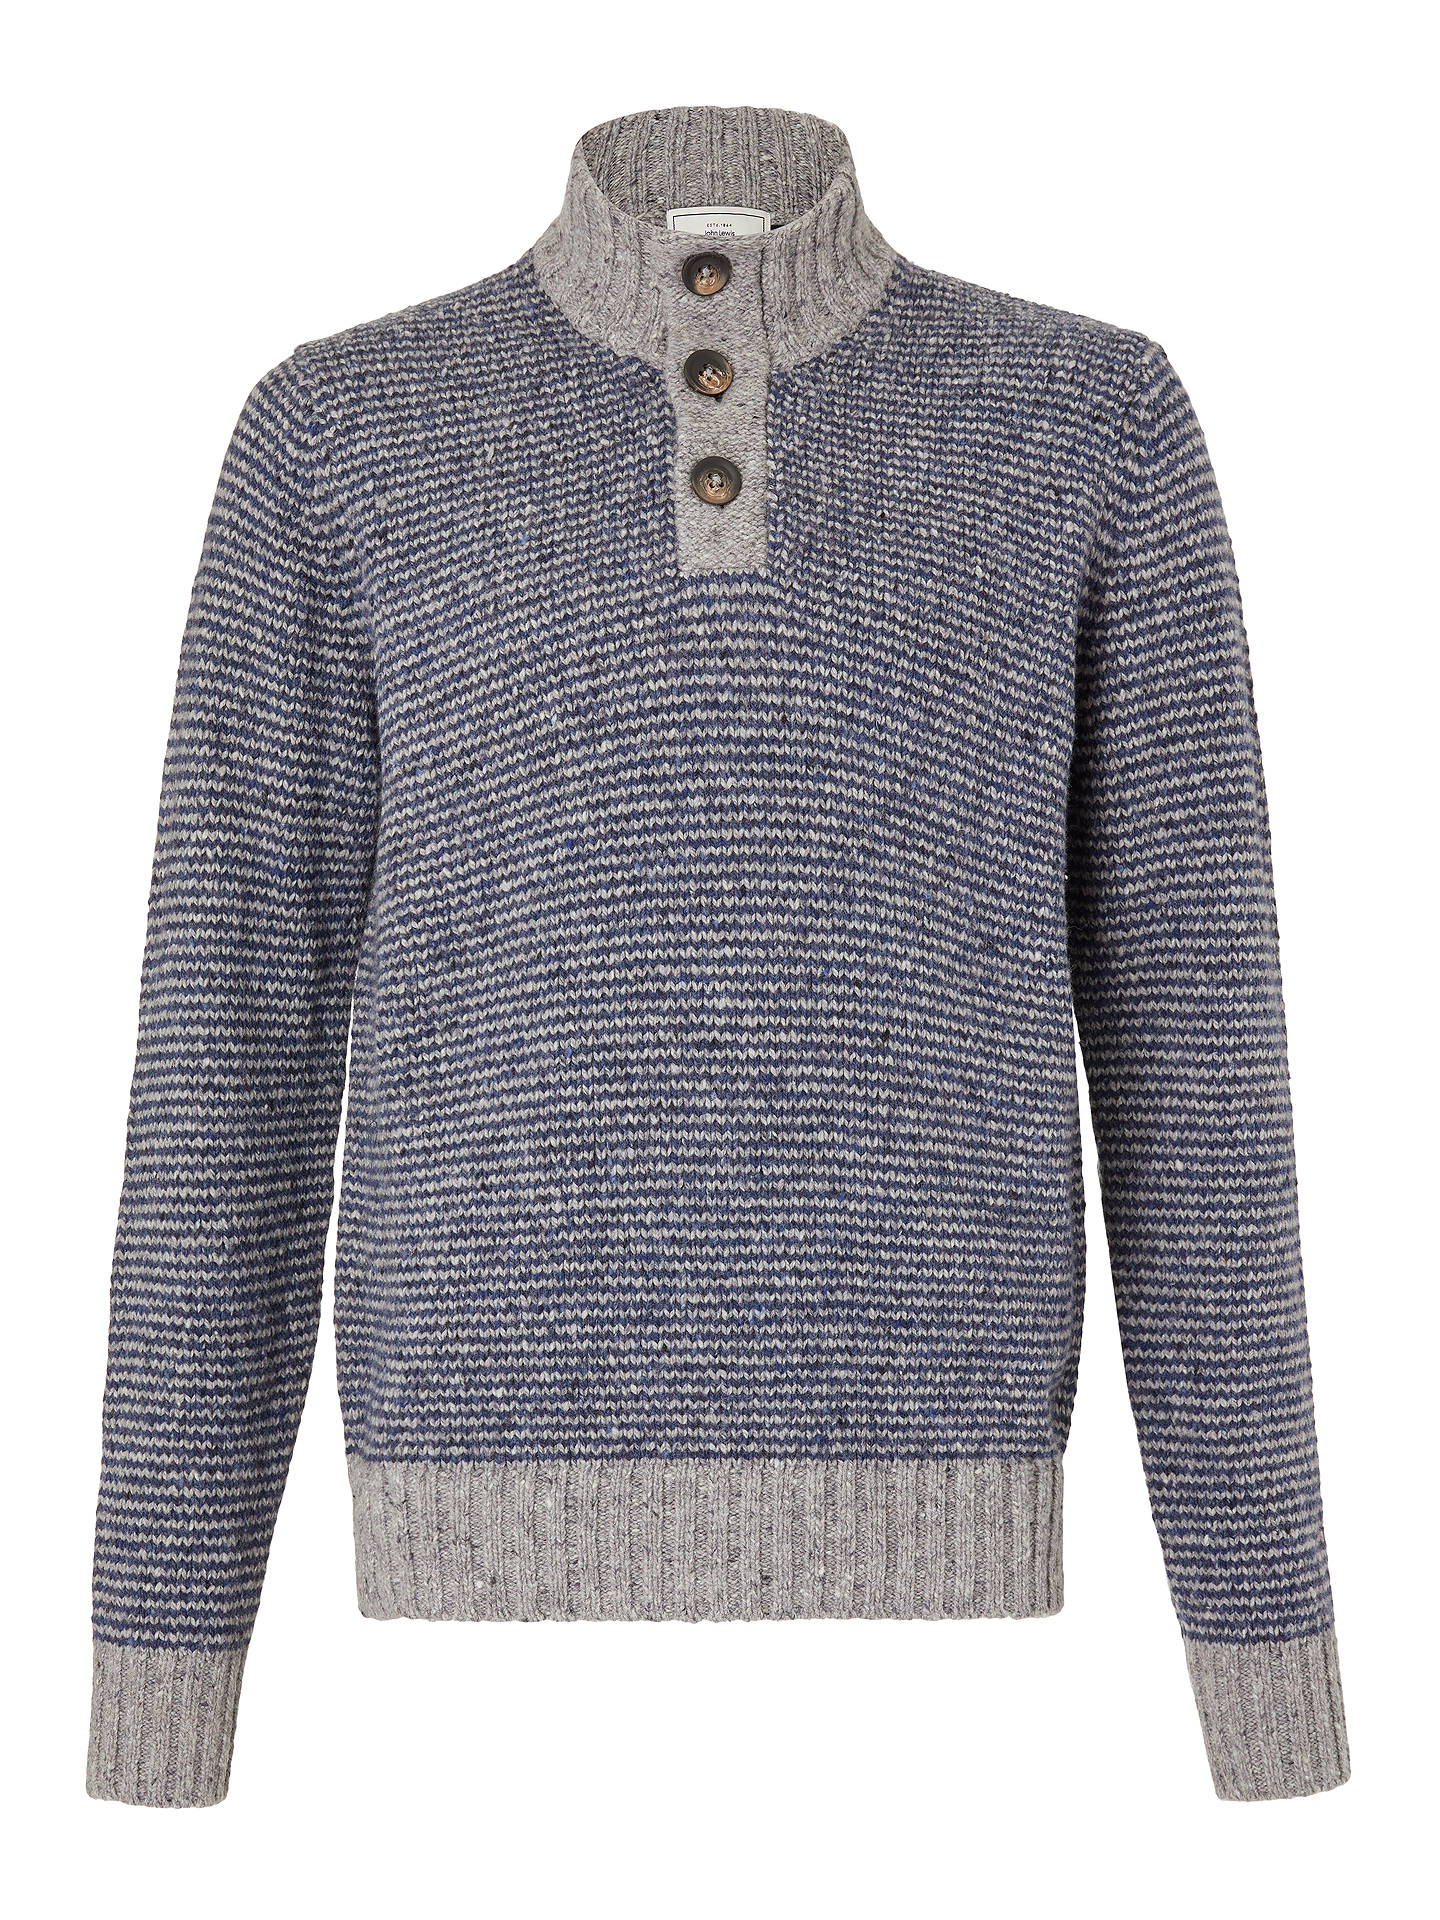 BuyJohn Lewis & Partners Frosty Stripe Button Neck Jumper, Blue, L Online at johnlewis.com